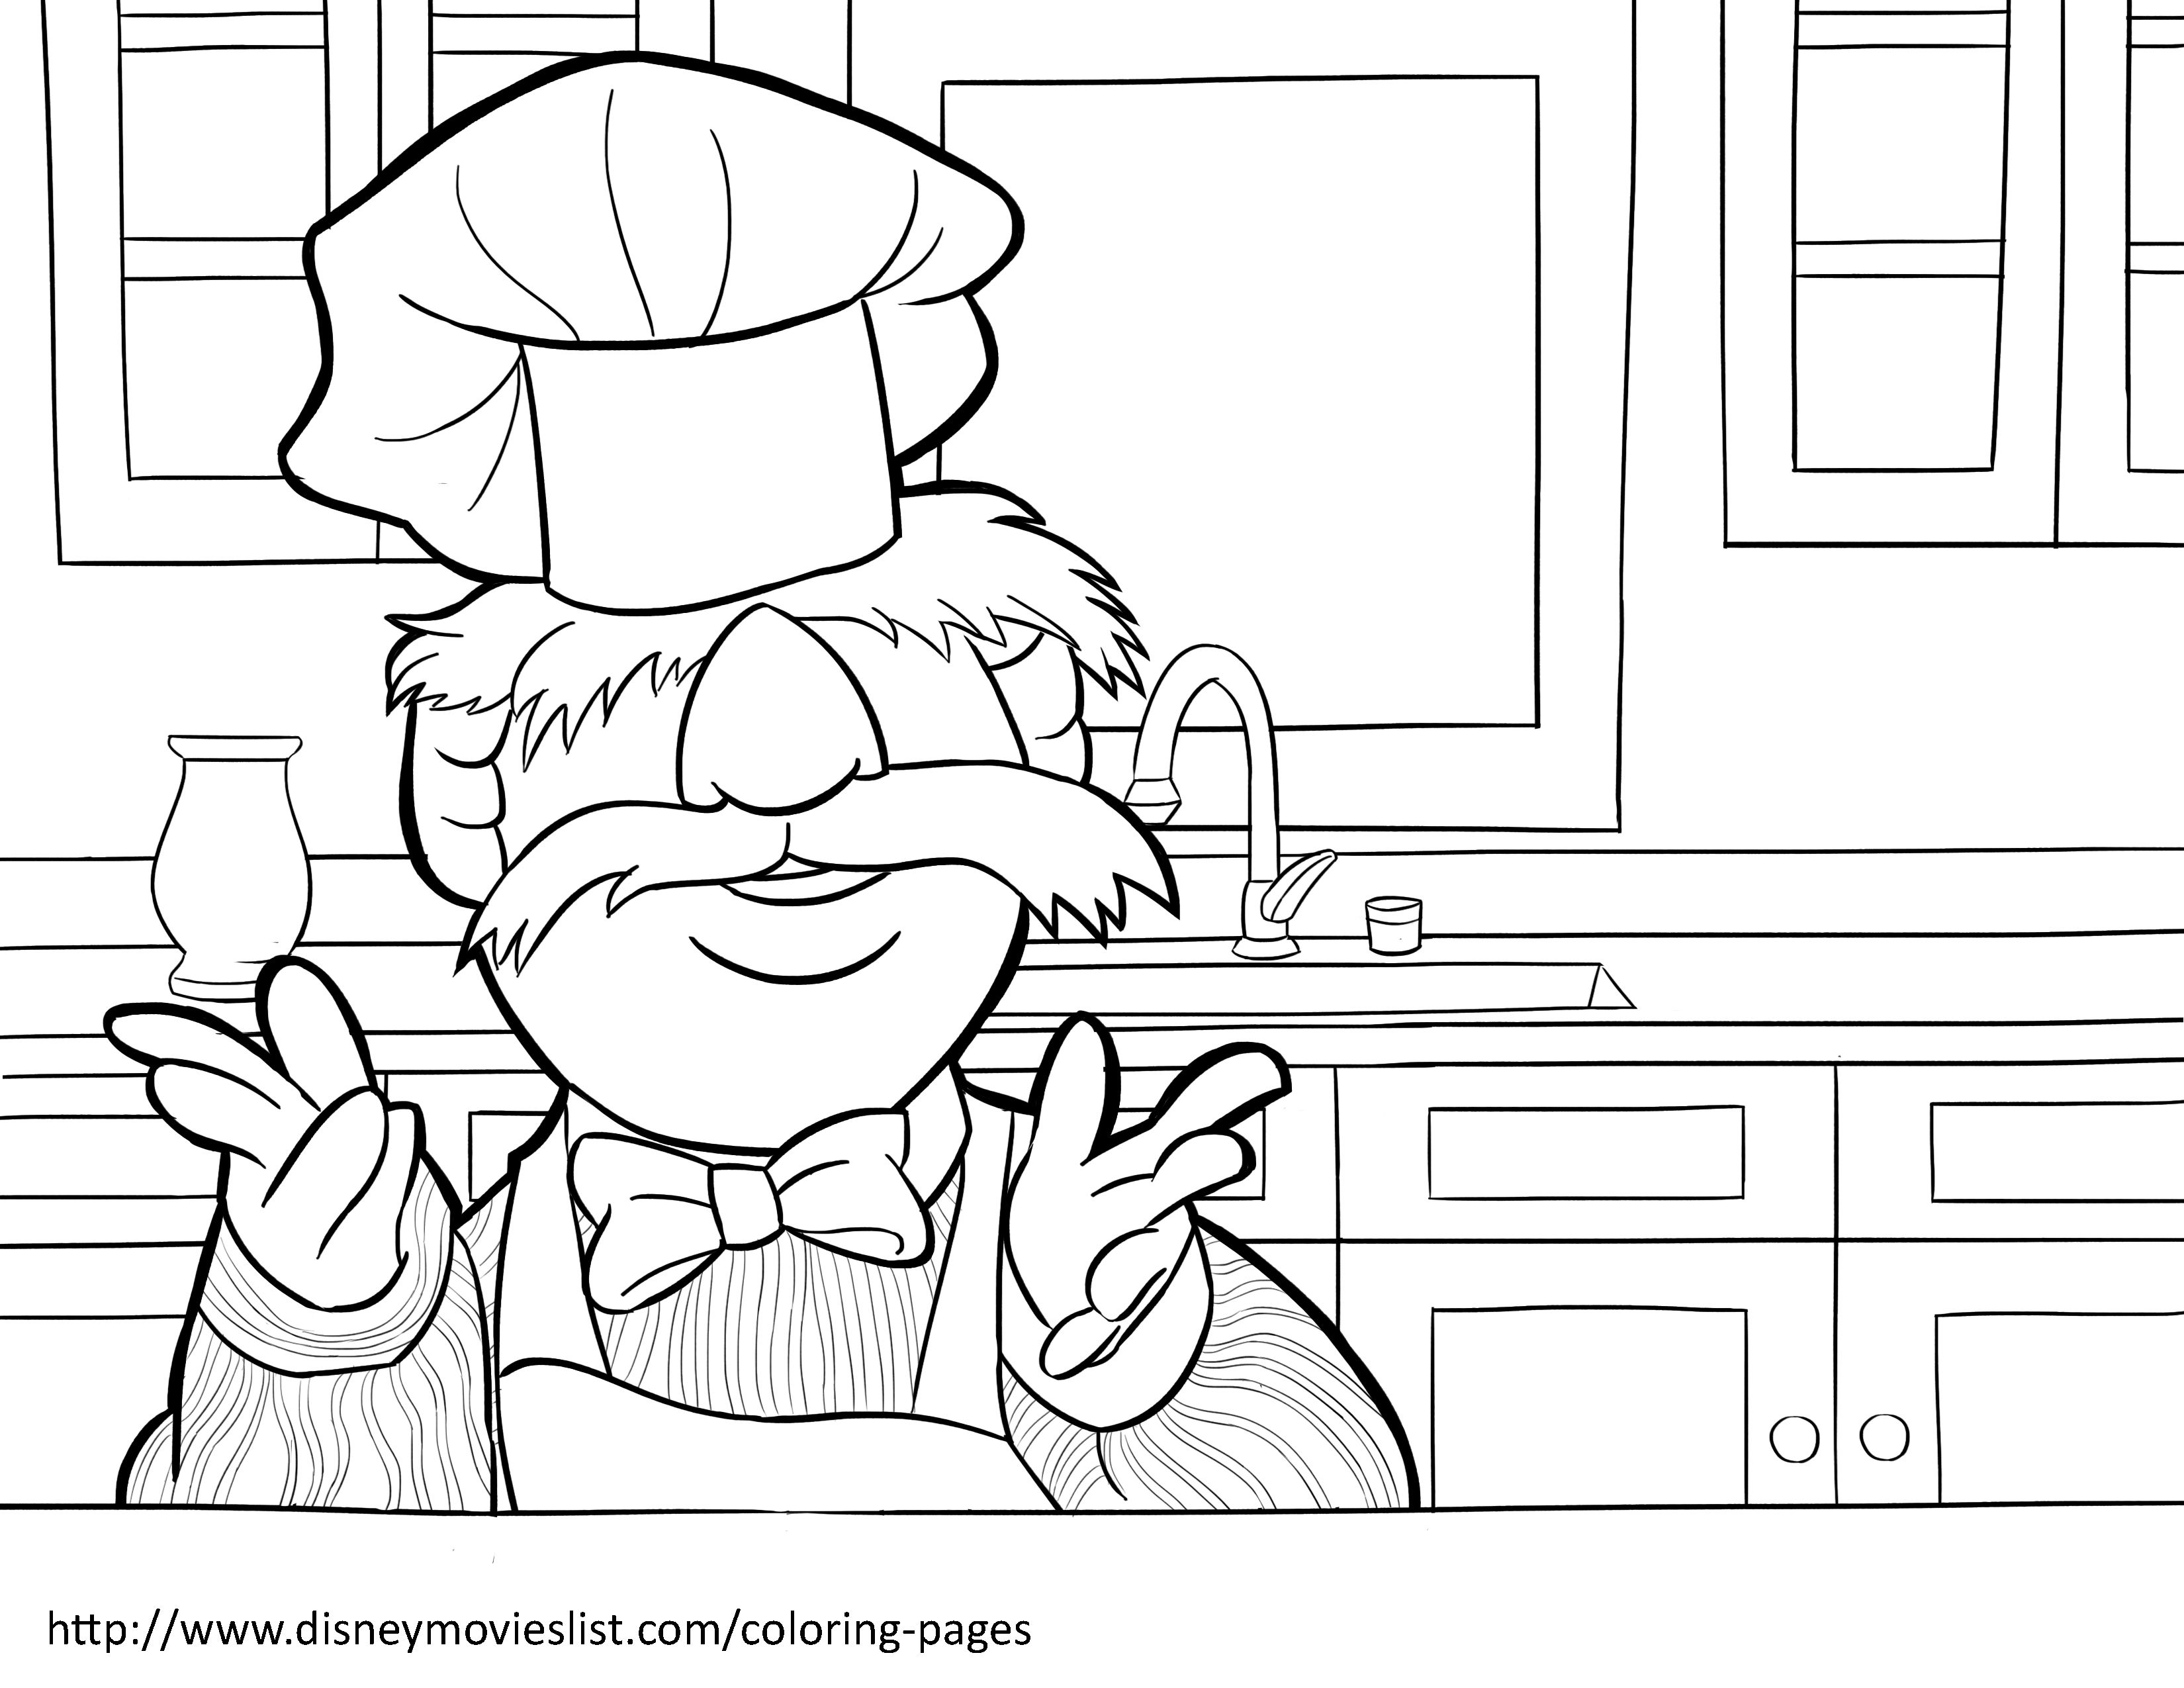 3300x2550 The Muppets Coloring Pages Location Chicago Printable Muppet Free